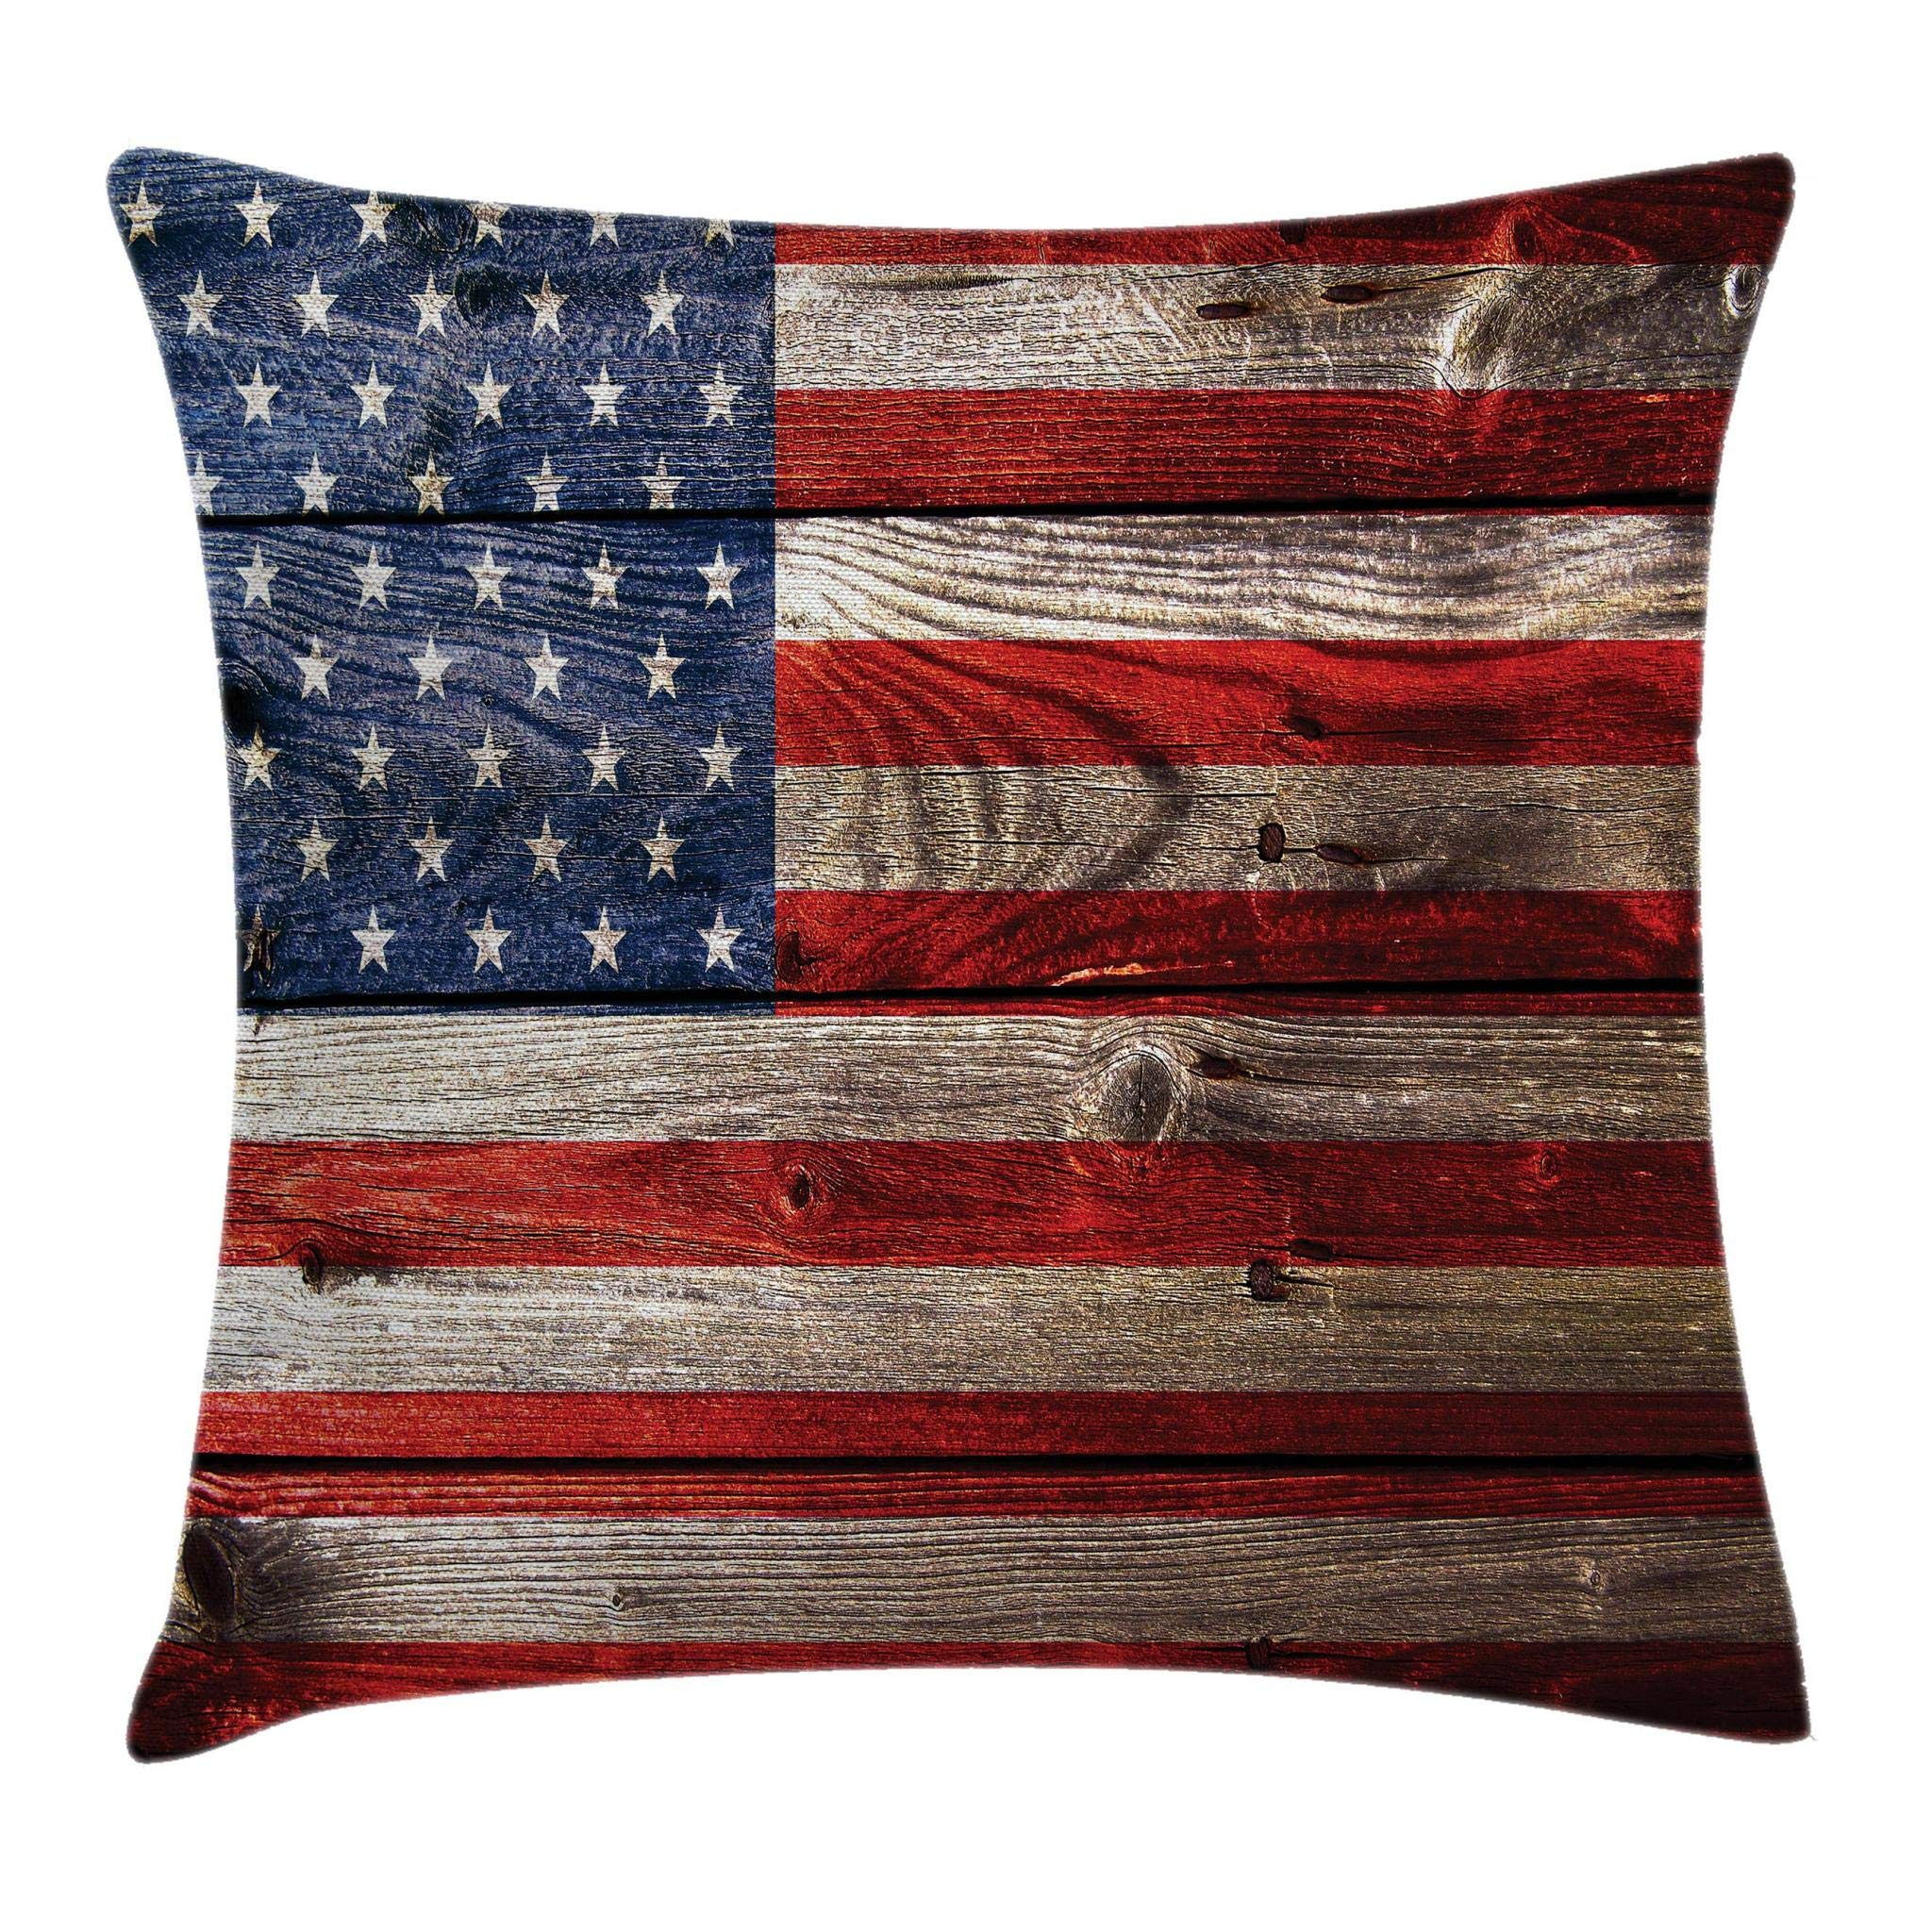 Ambesonne USA Throw Pillow Cushion Cover, Fourth of July Independence Day Weathered Retro Wood Wall Looking Country Emblem, Decorative Square Accent Pillow Case, 24'' X 24'', Blue Red by Ambesonne